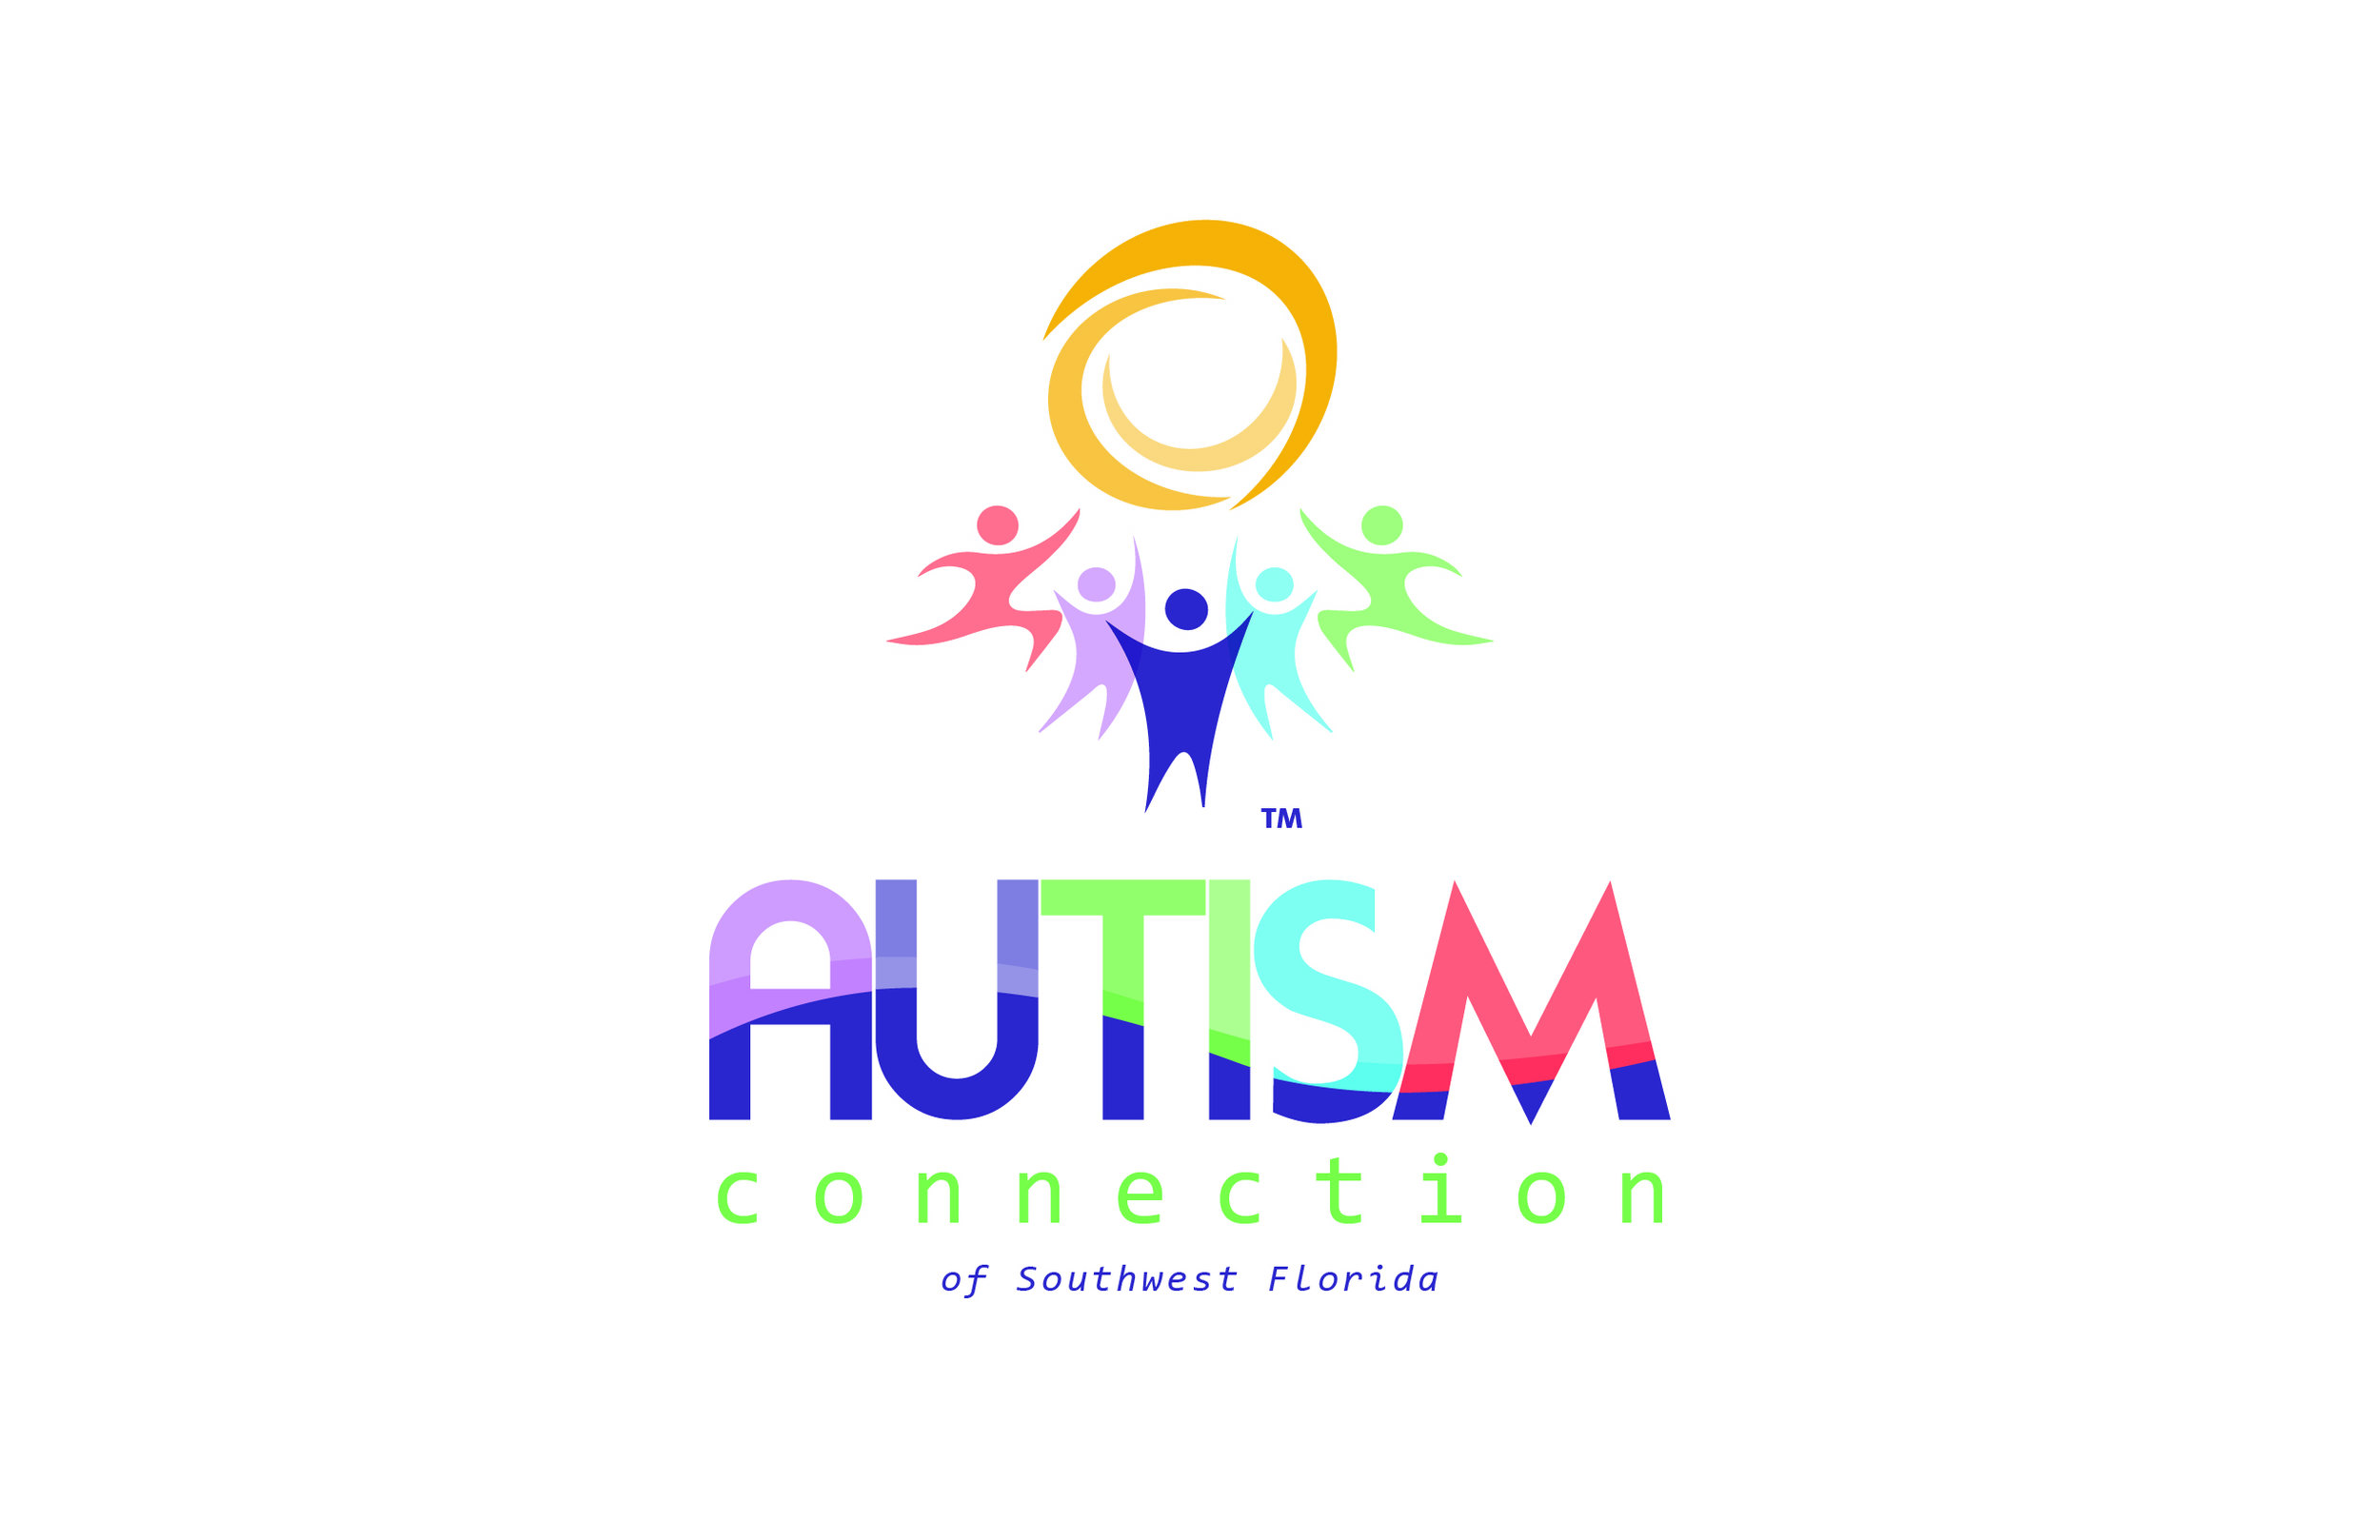 AutismConnectionSWFL_LOGO_REVISED.jpg